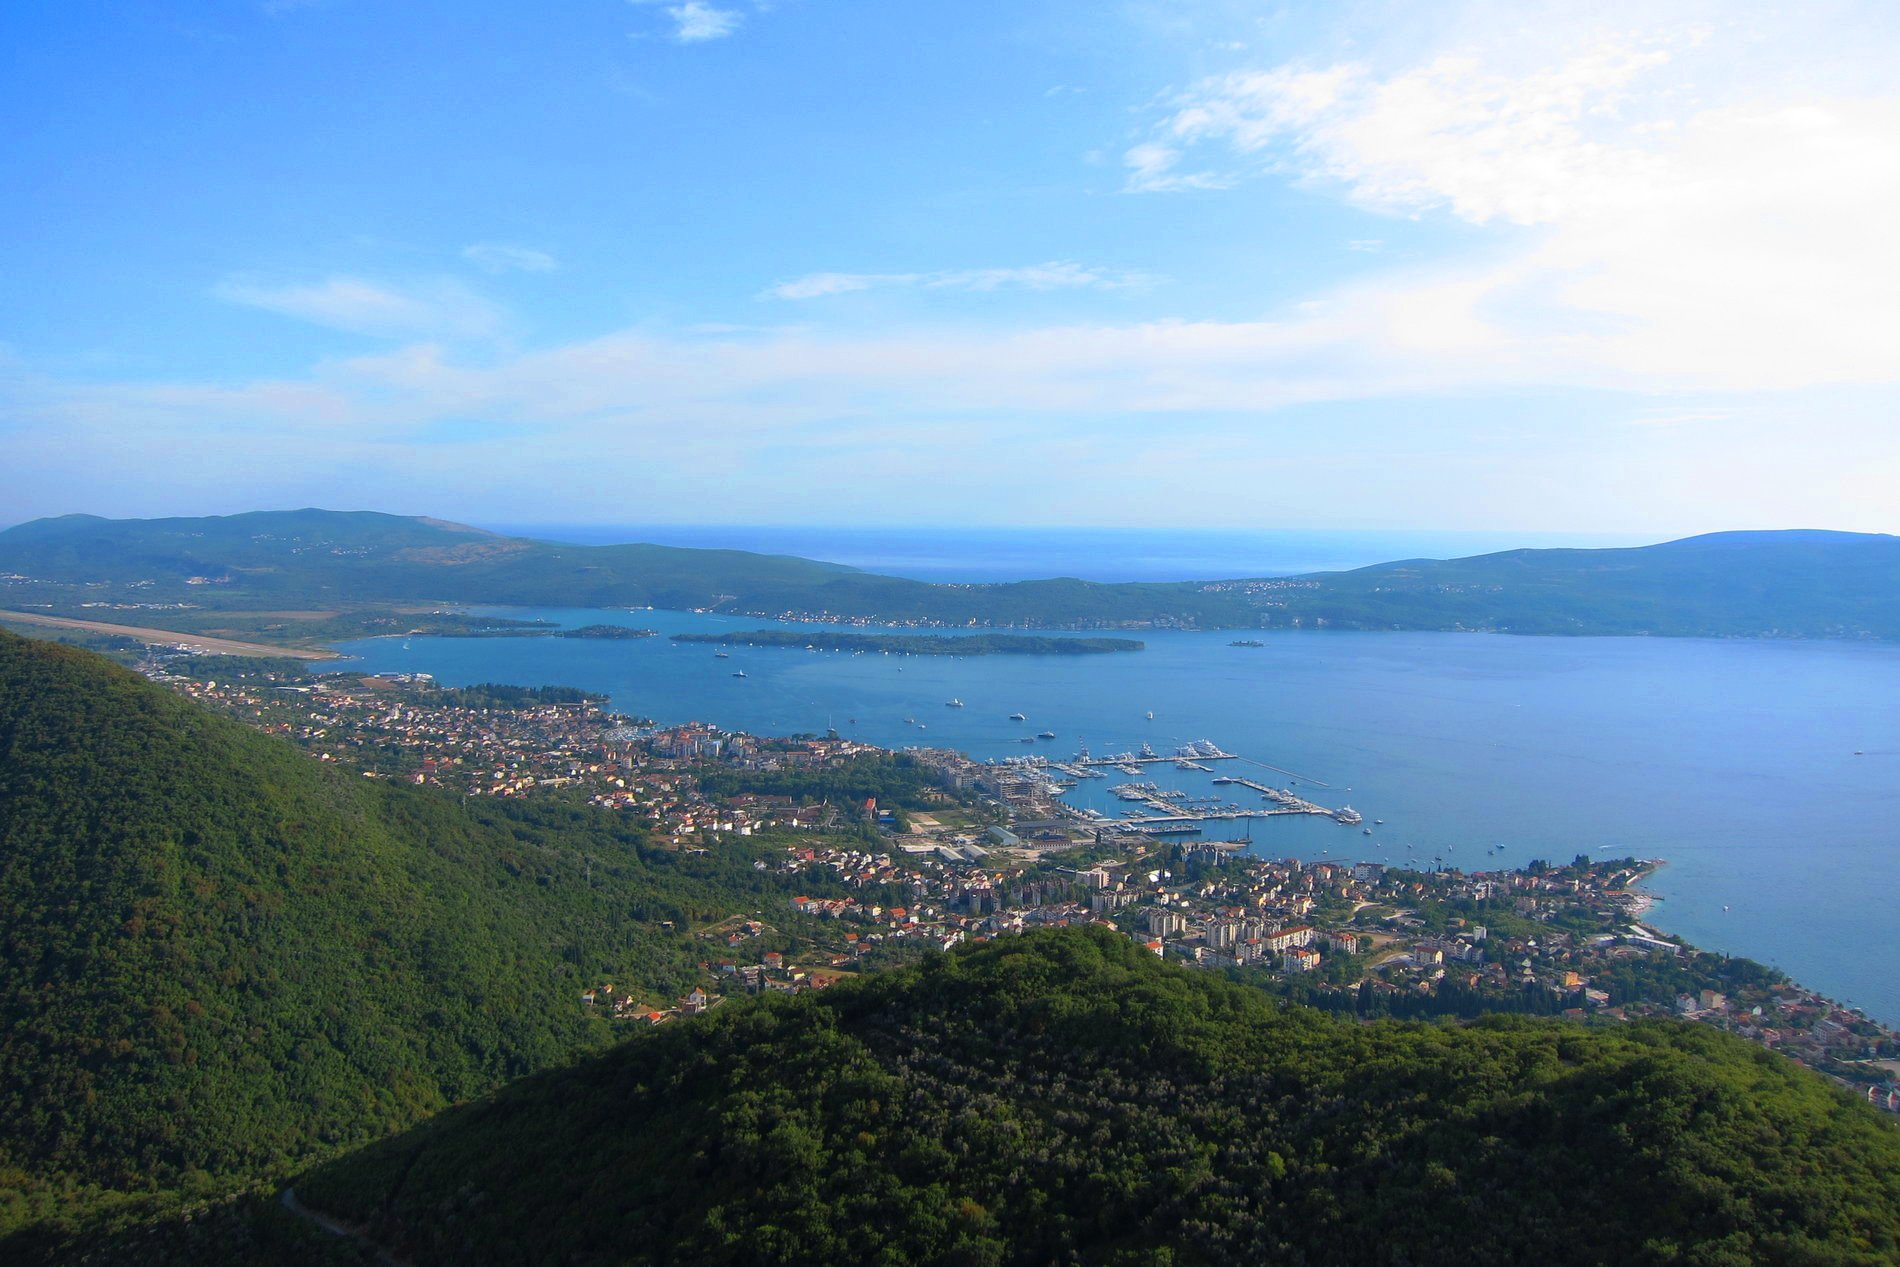 The surroundings of Tivat